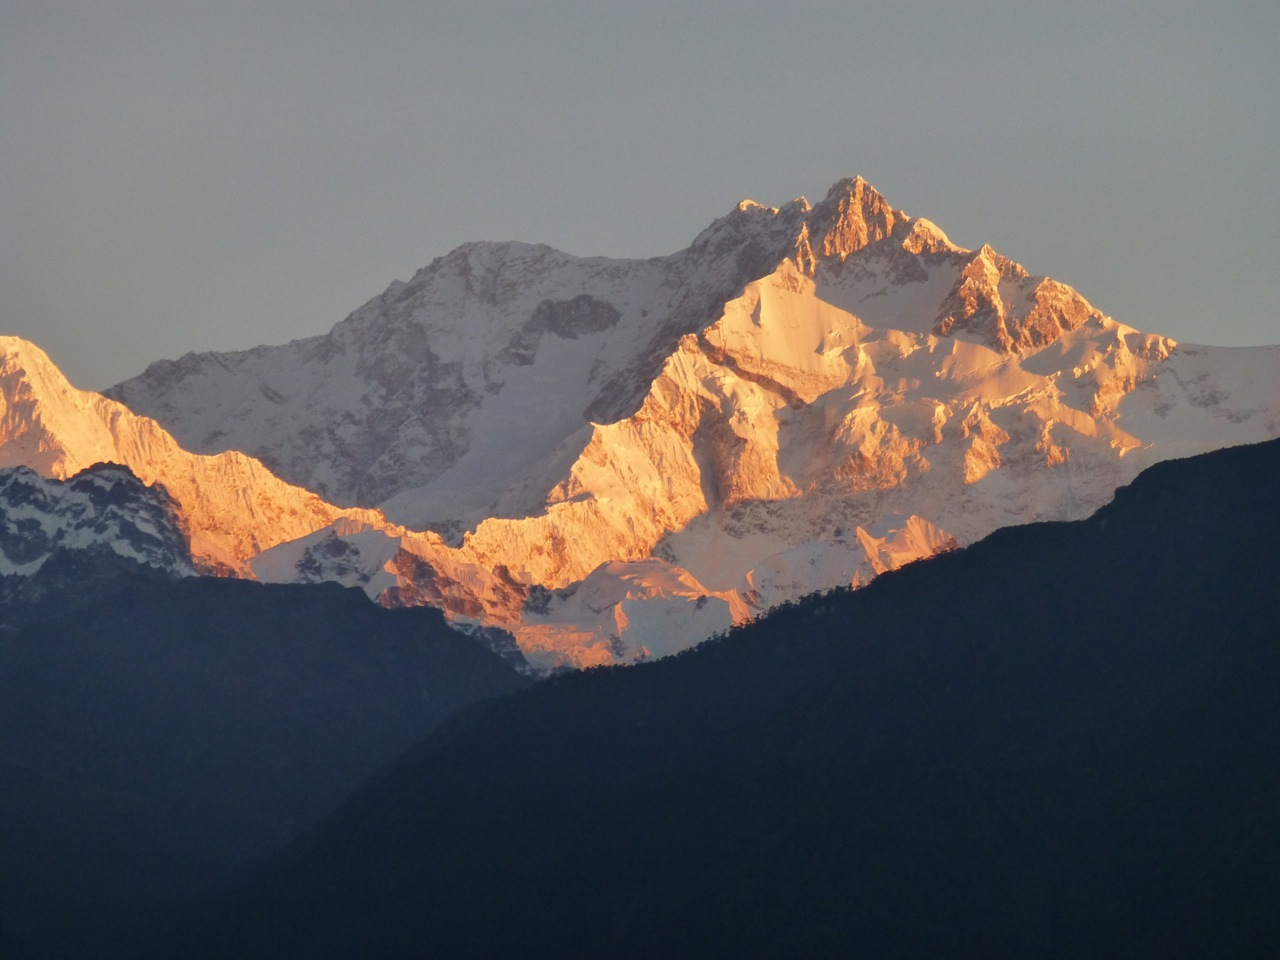 Mt Kanchenjunga at dawn